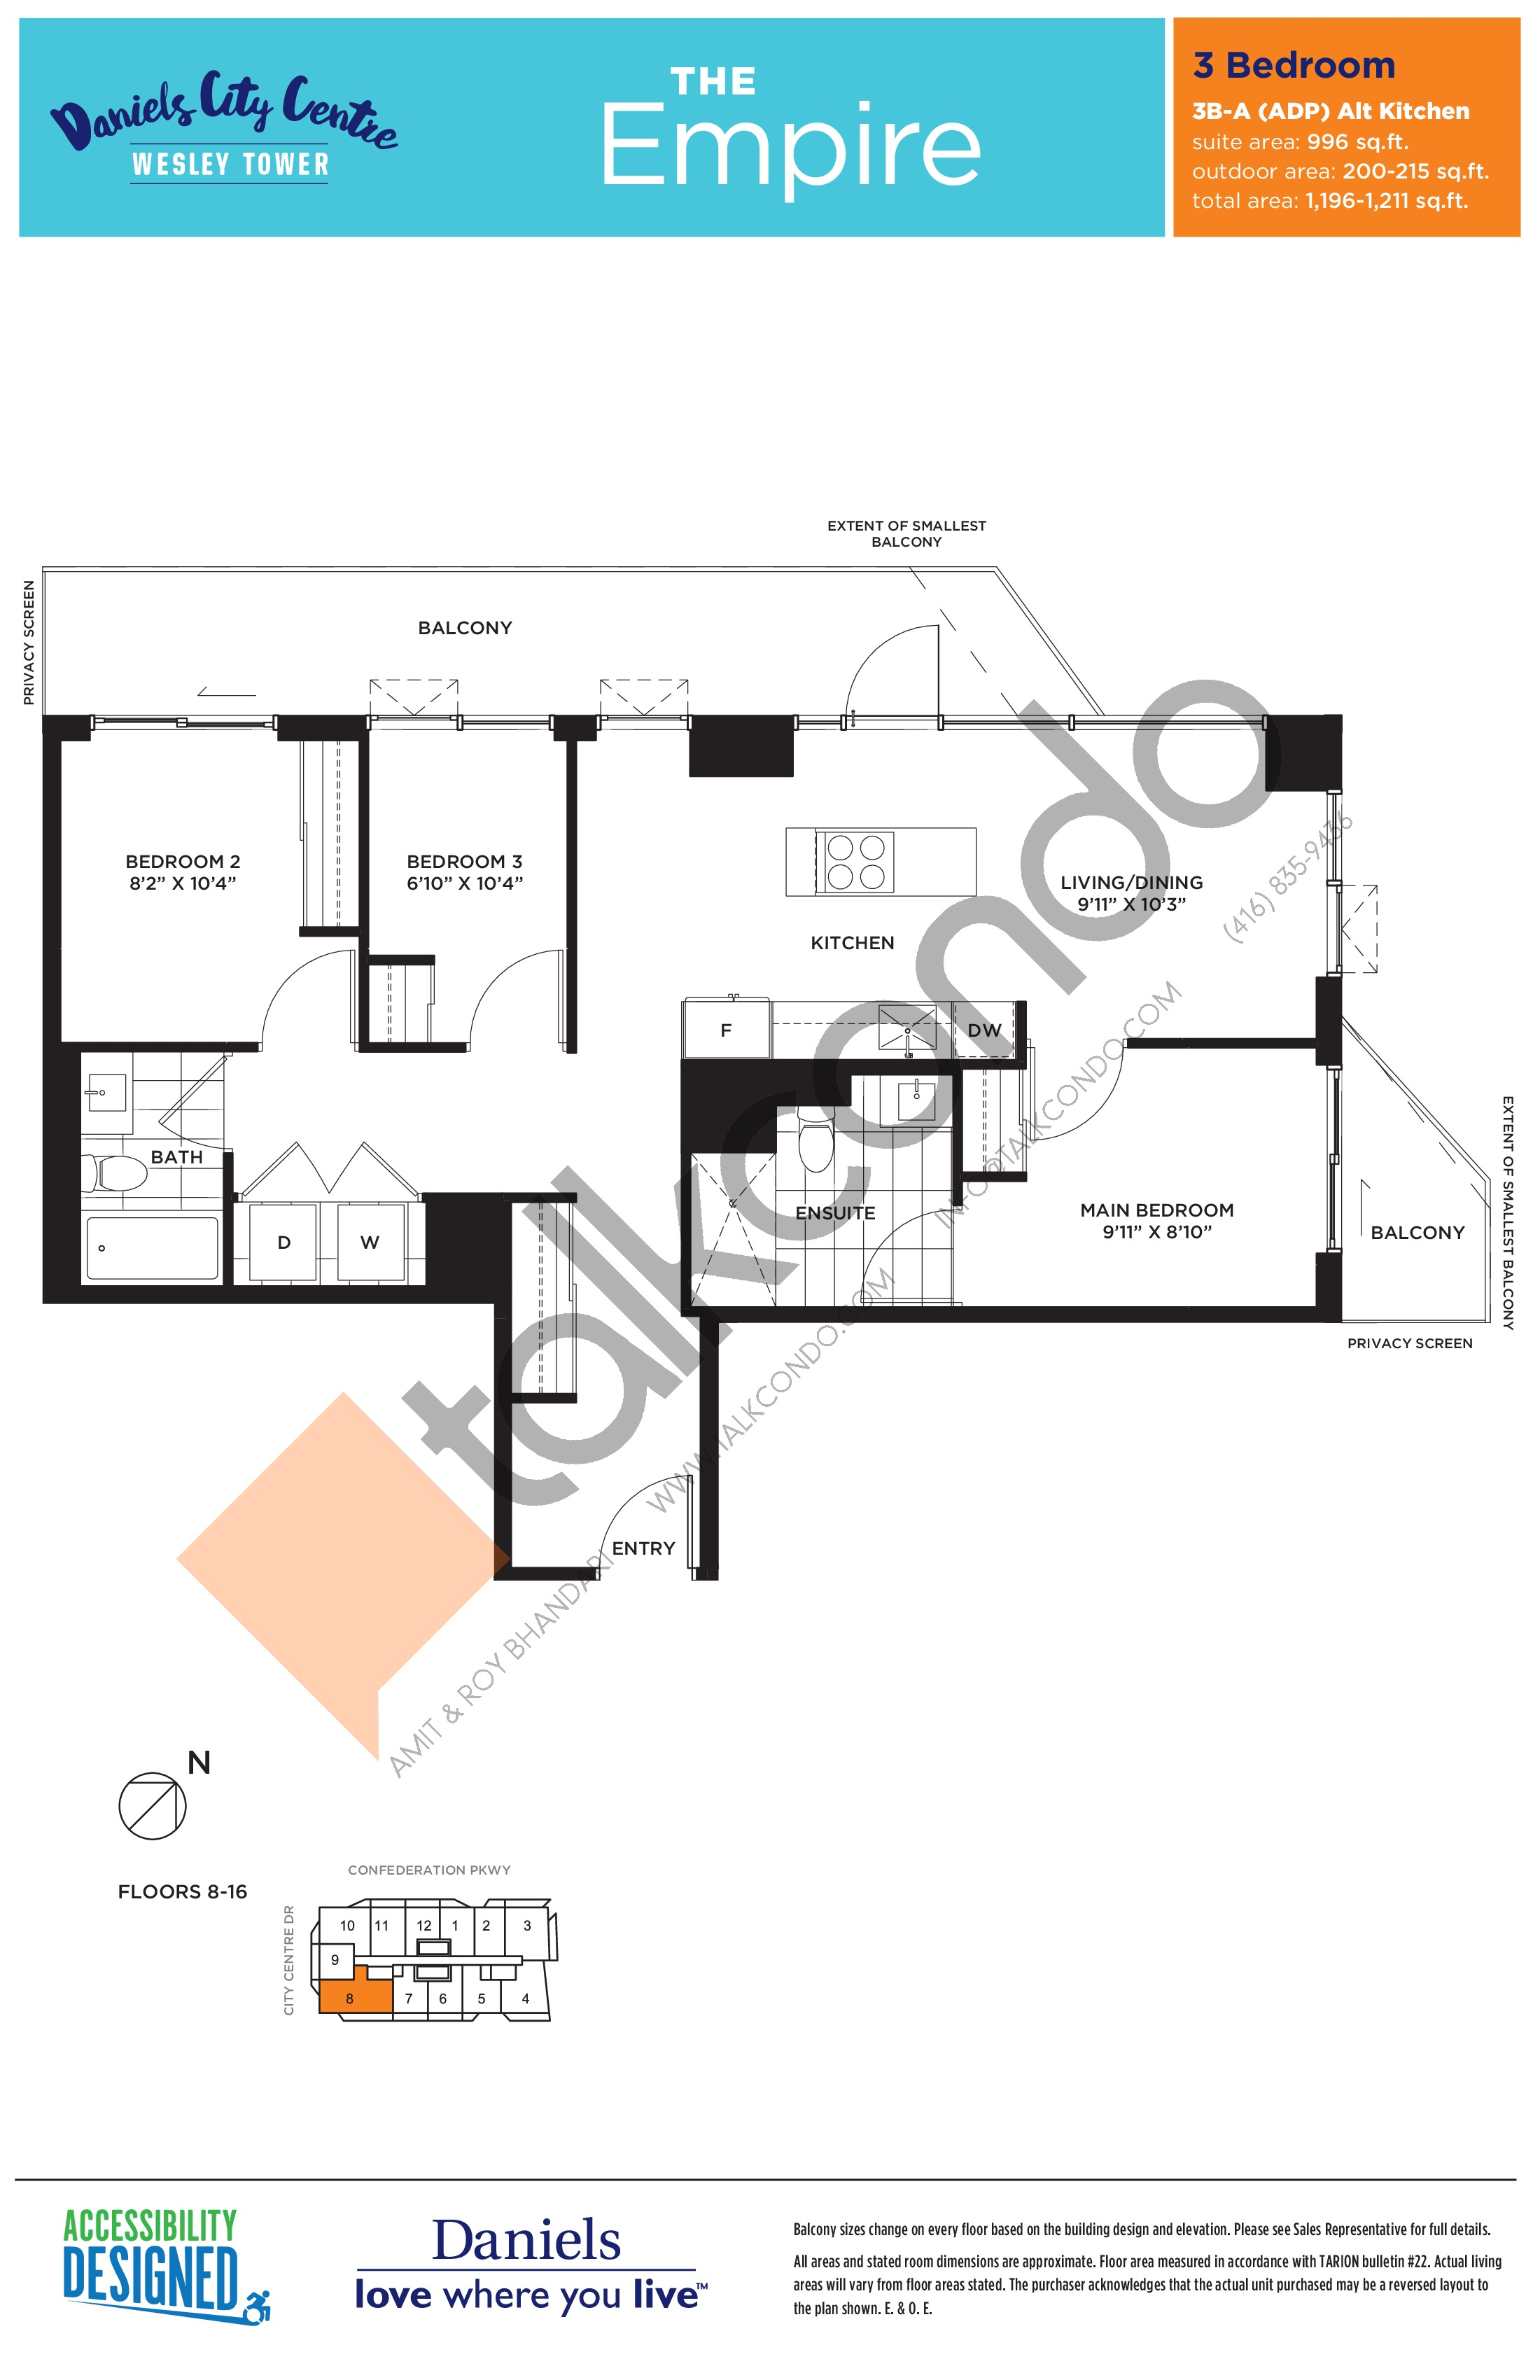 The Empire Floor Plan at The Wesley Tower at Daniels City Centre Condos - 996 sq.ft